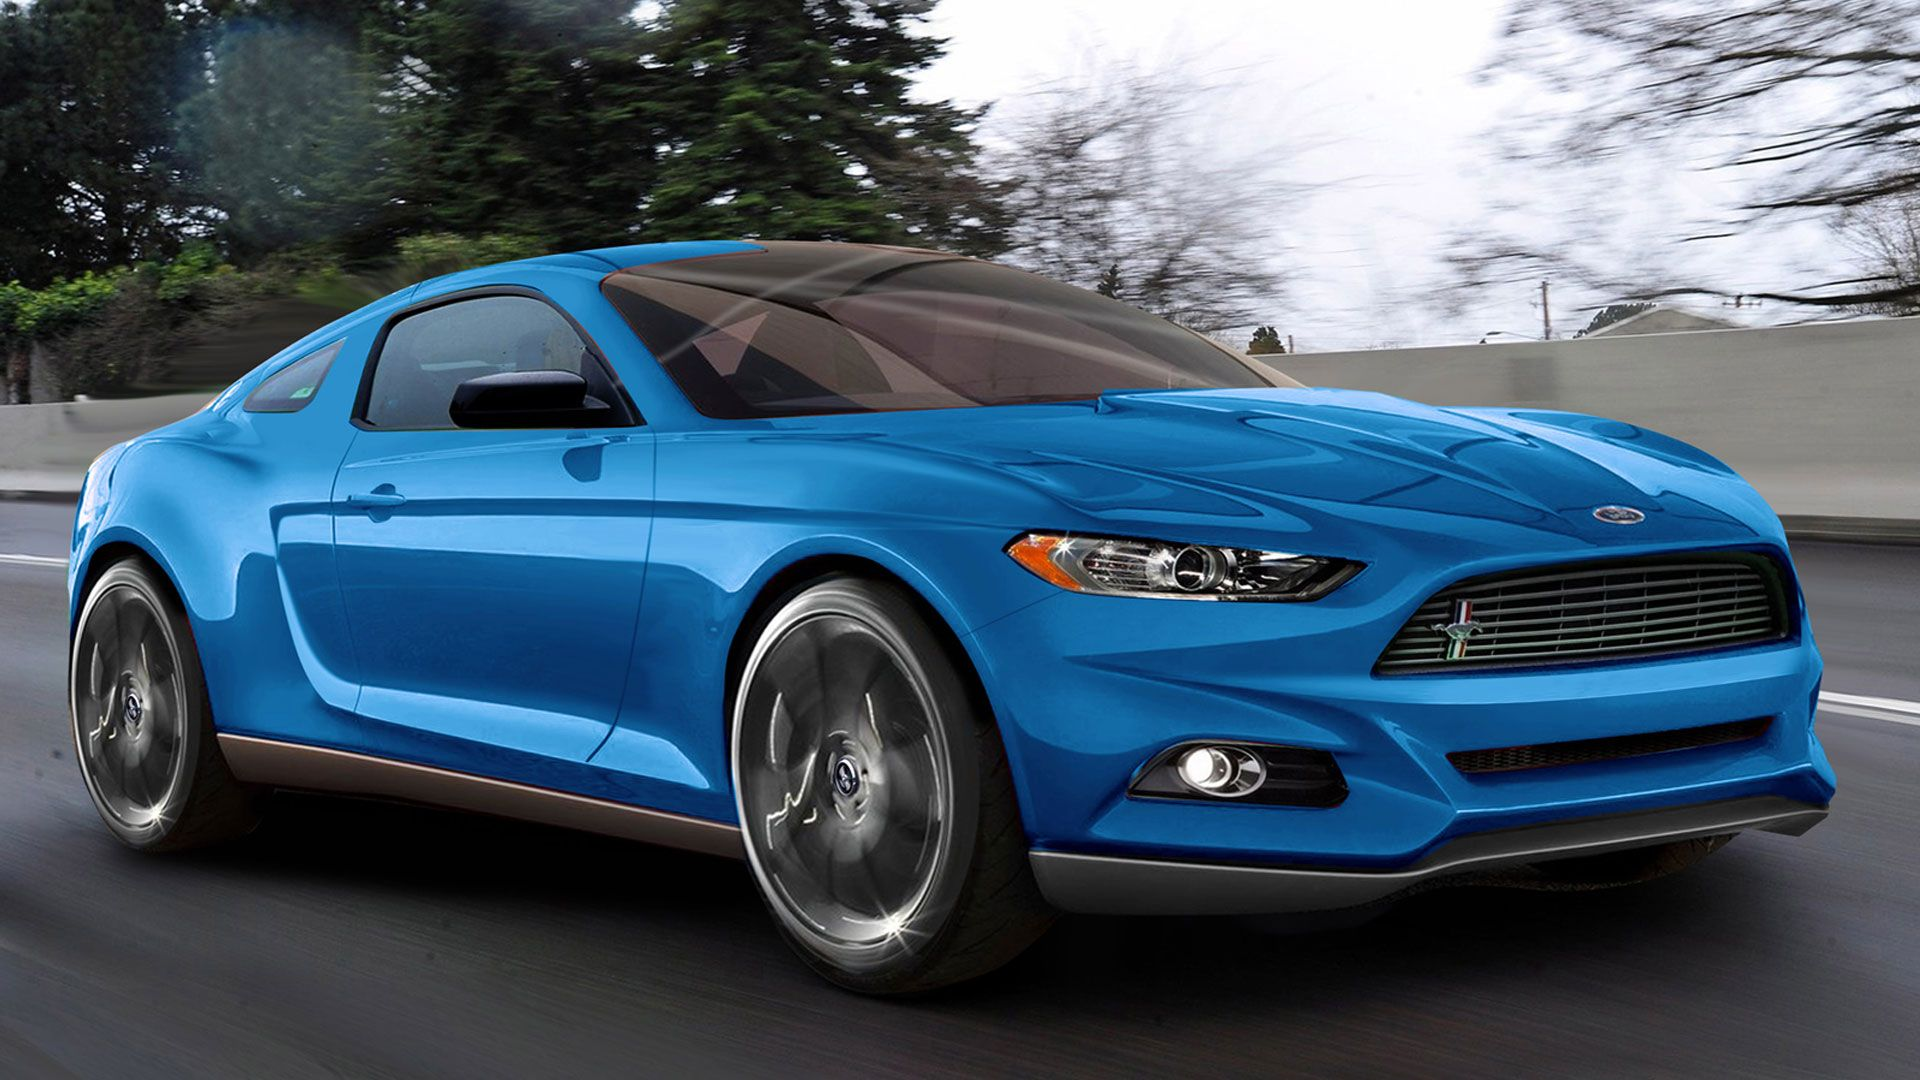 2015 ford mustang gt blueprints 2015 ford mustang gt must sell in mint condition